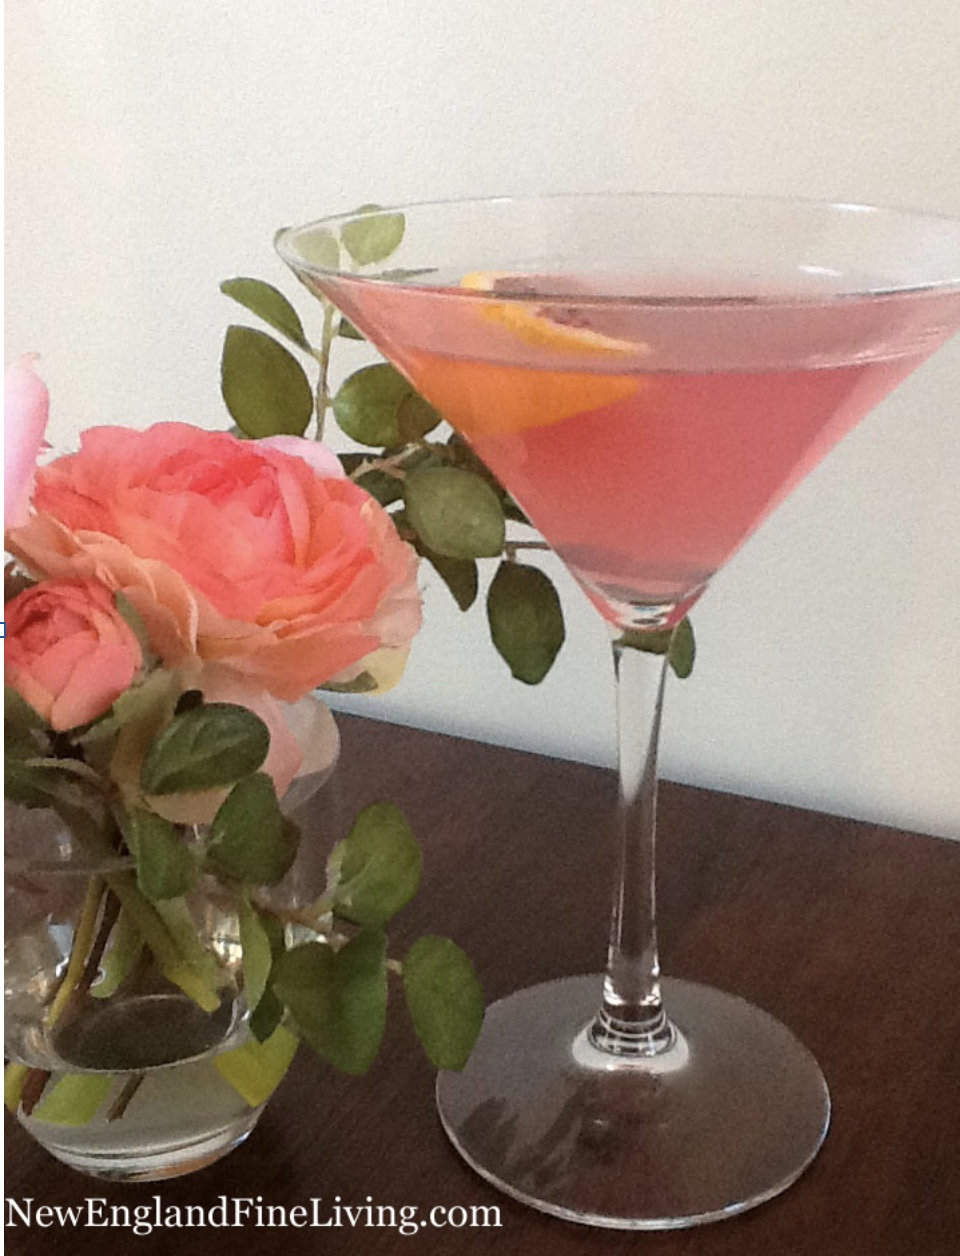 cocktail made with Passion flower liquor